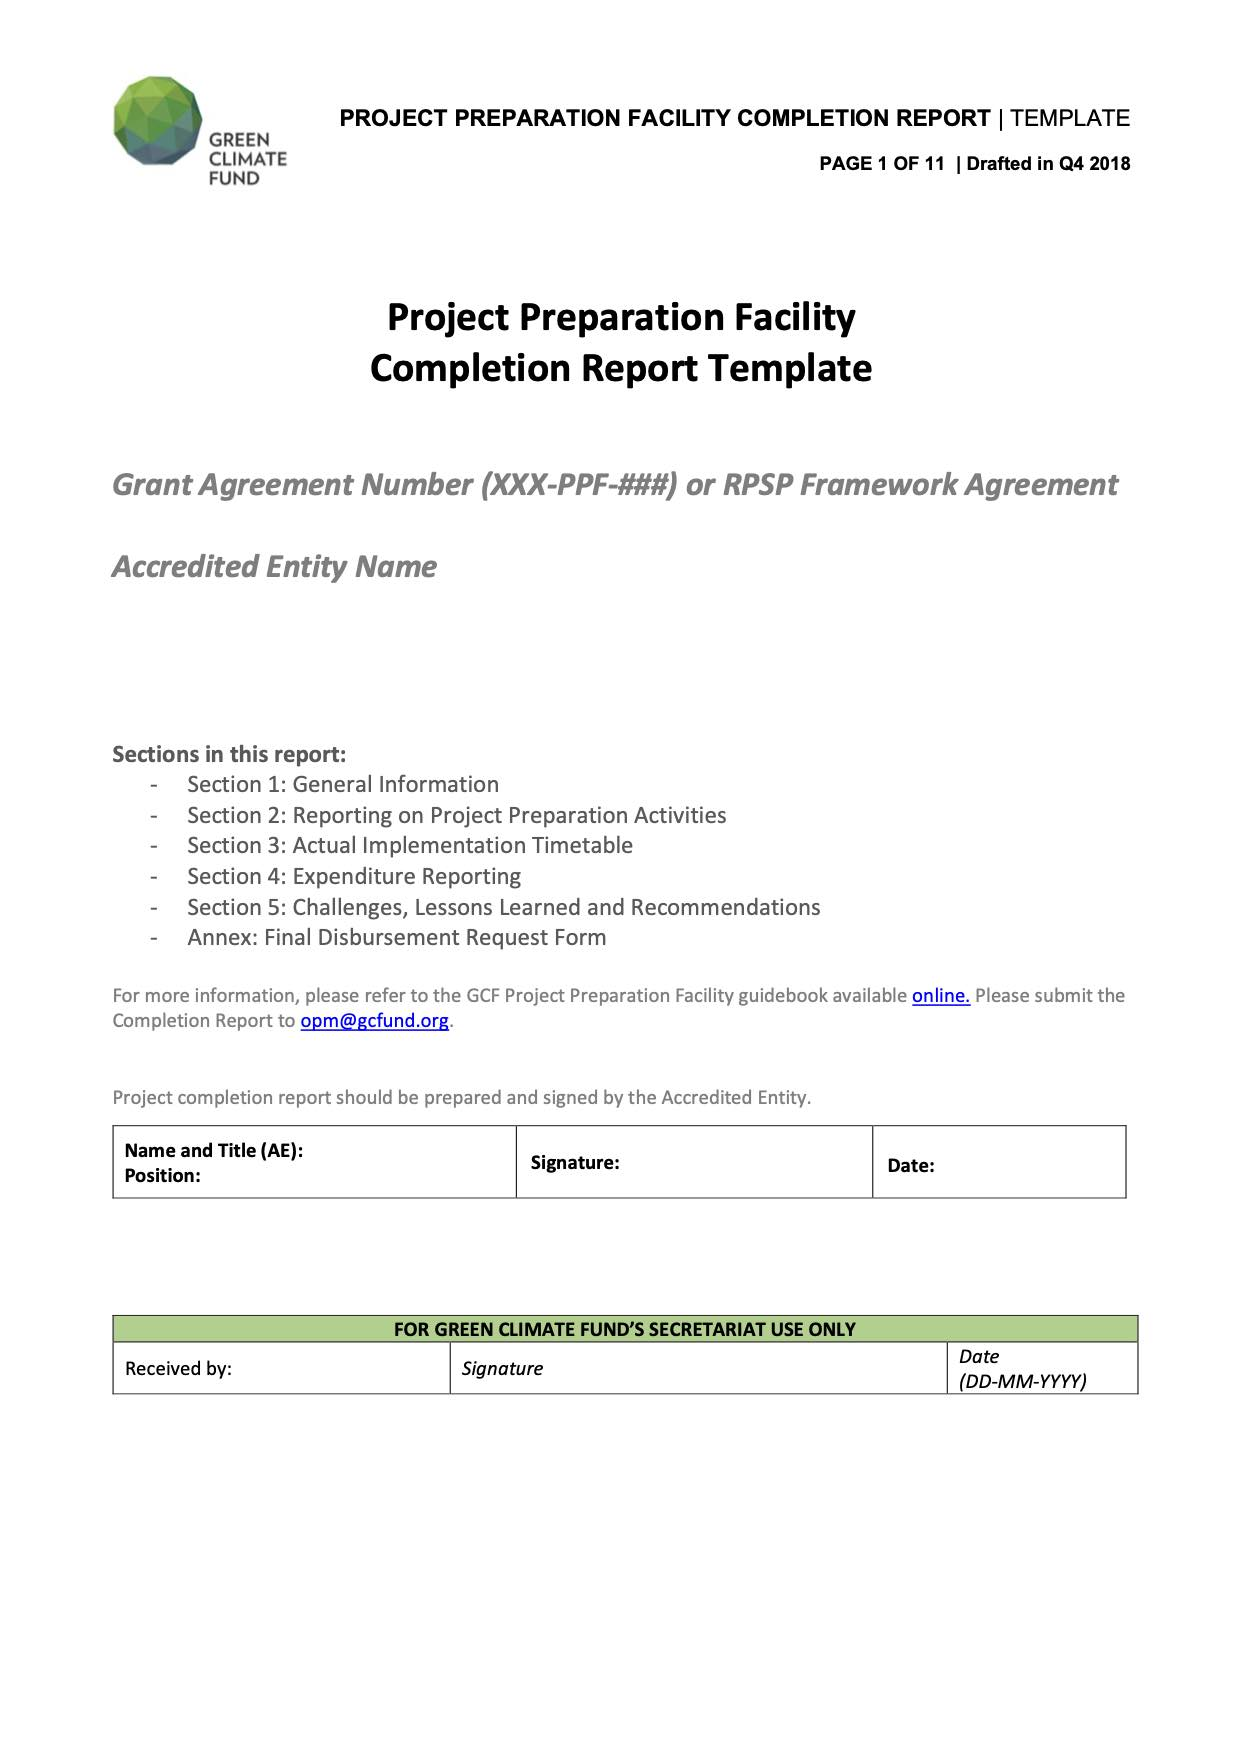 Project Preparation Facility Completion Report Template